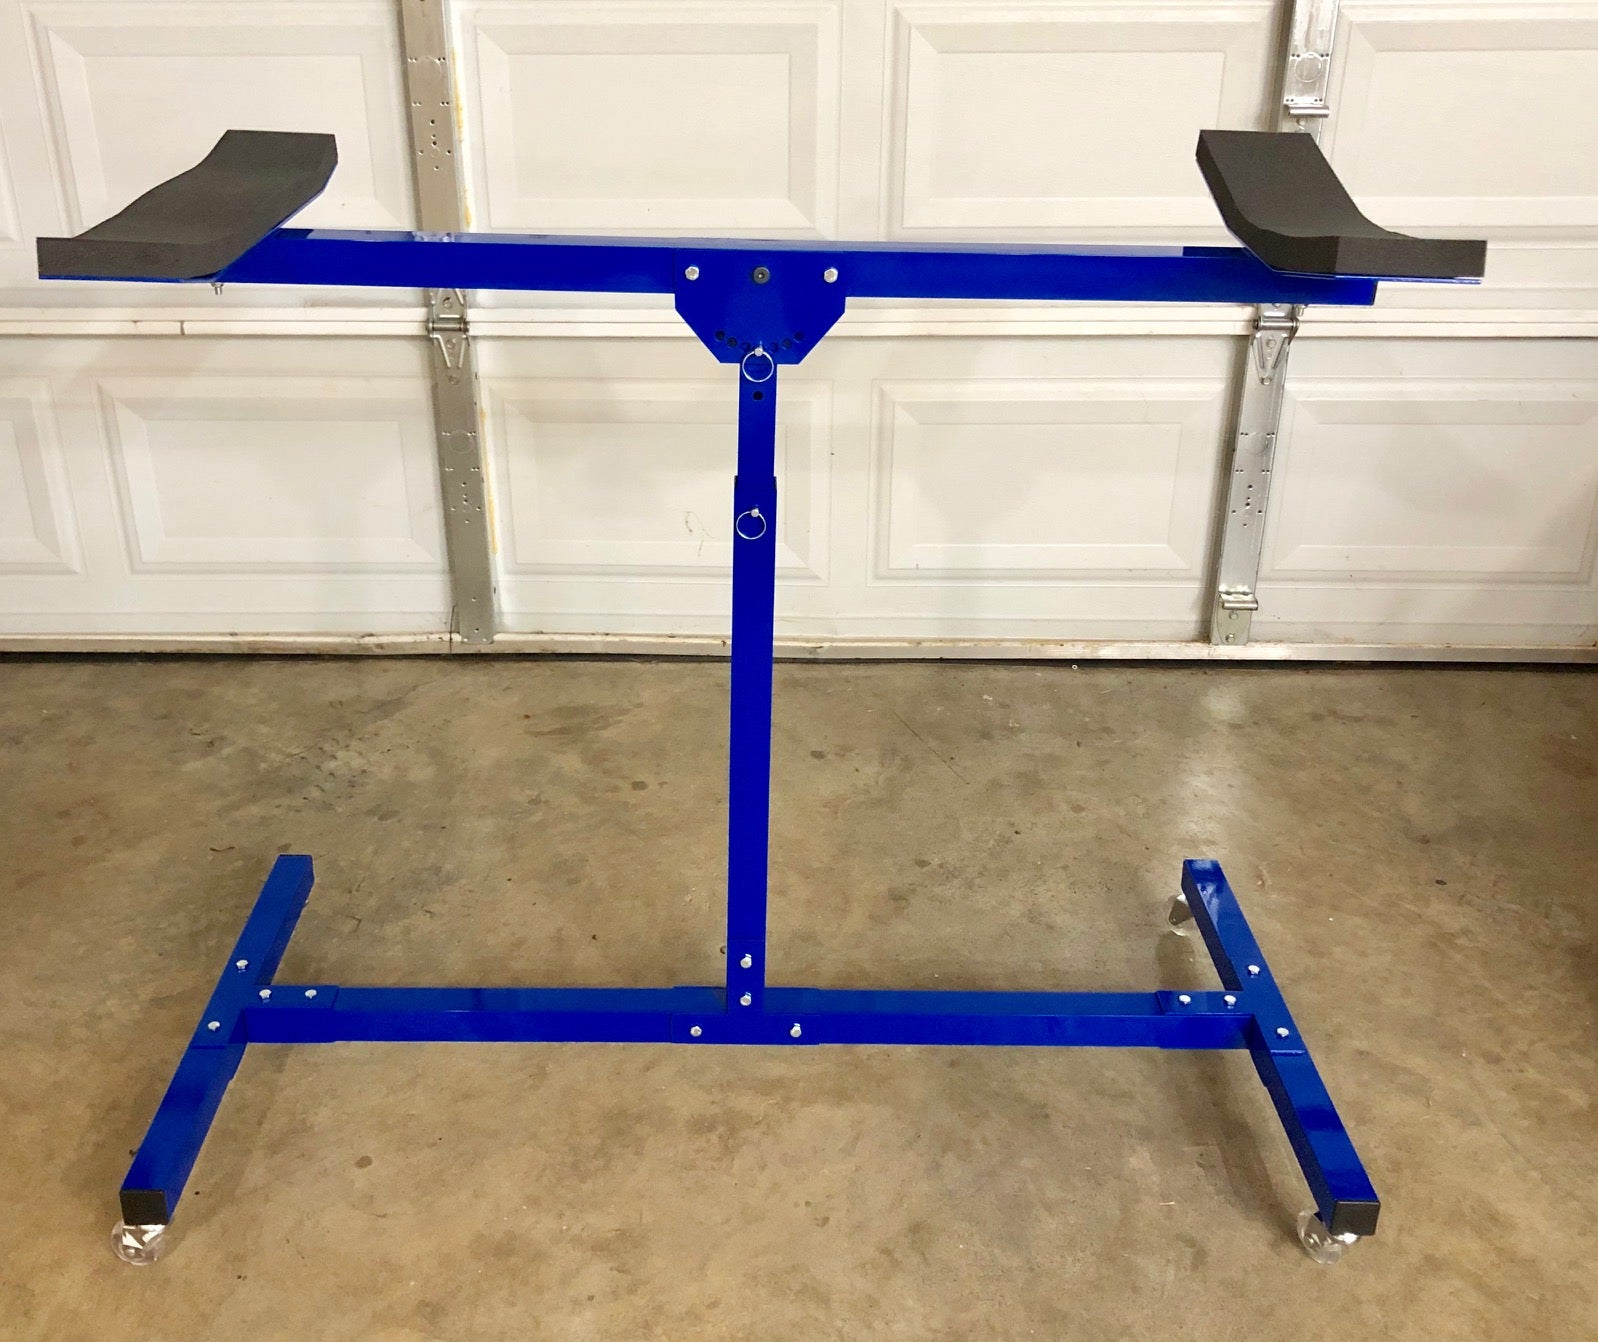 PRCJ ADJUSTABLE BUILD / STORAGE / DISPLAY STAND